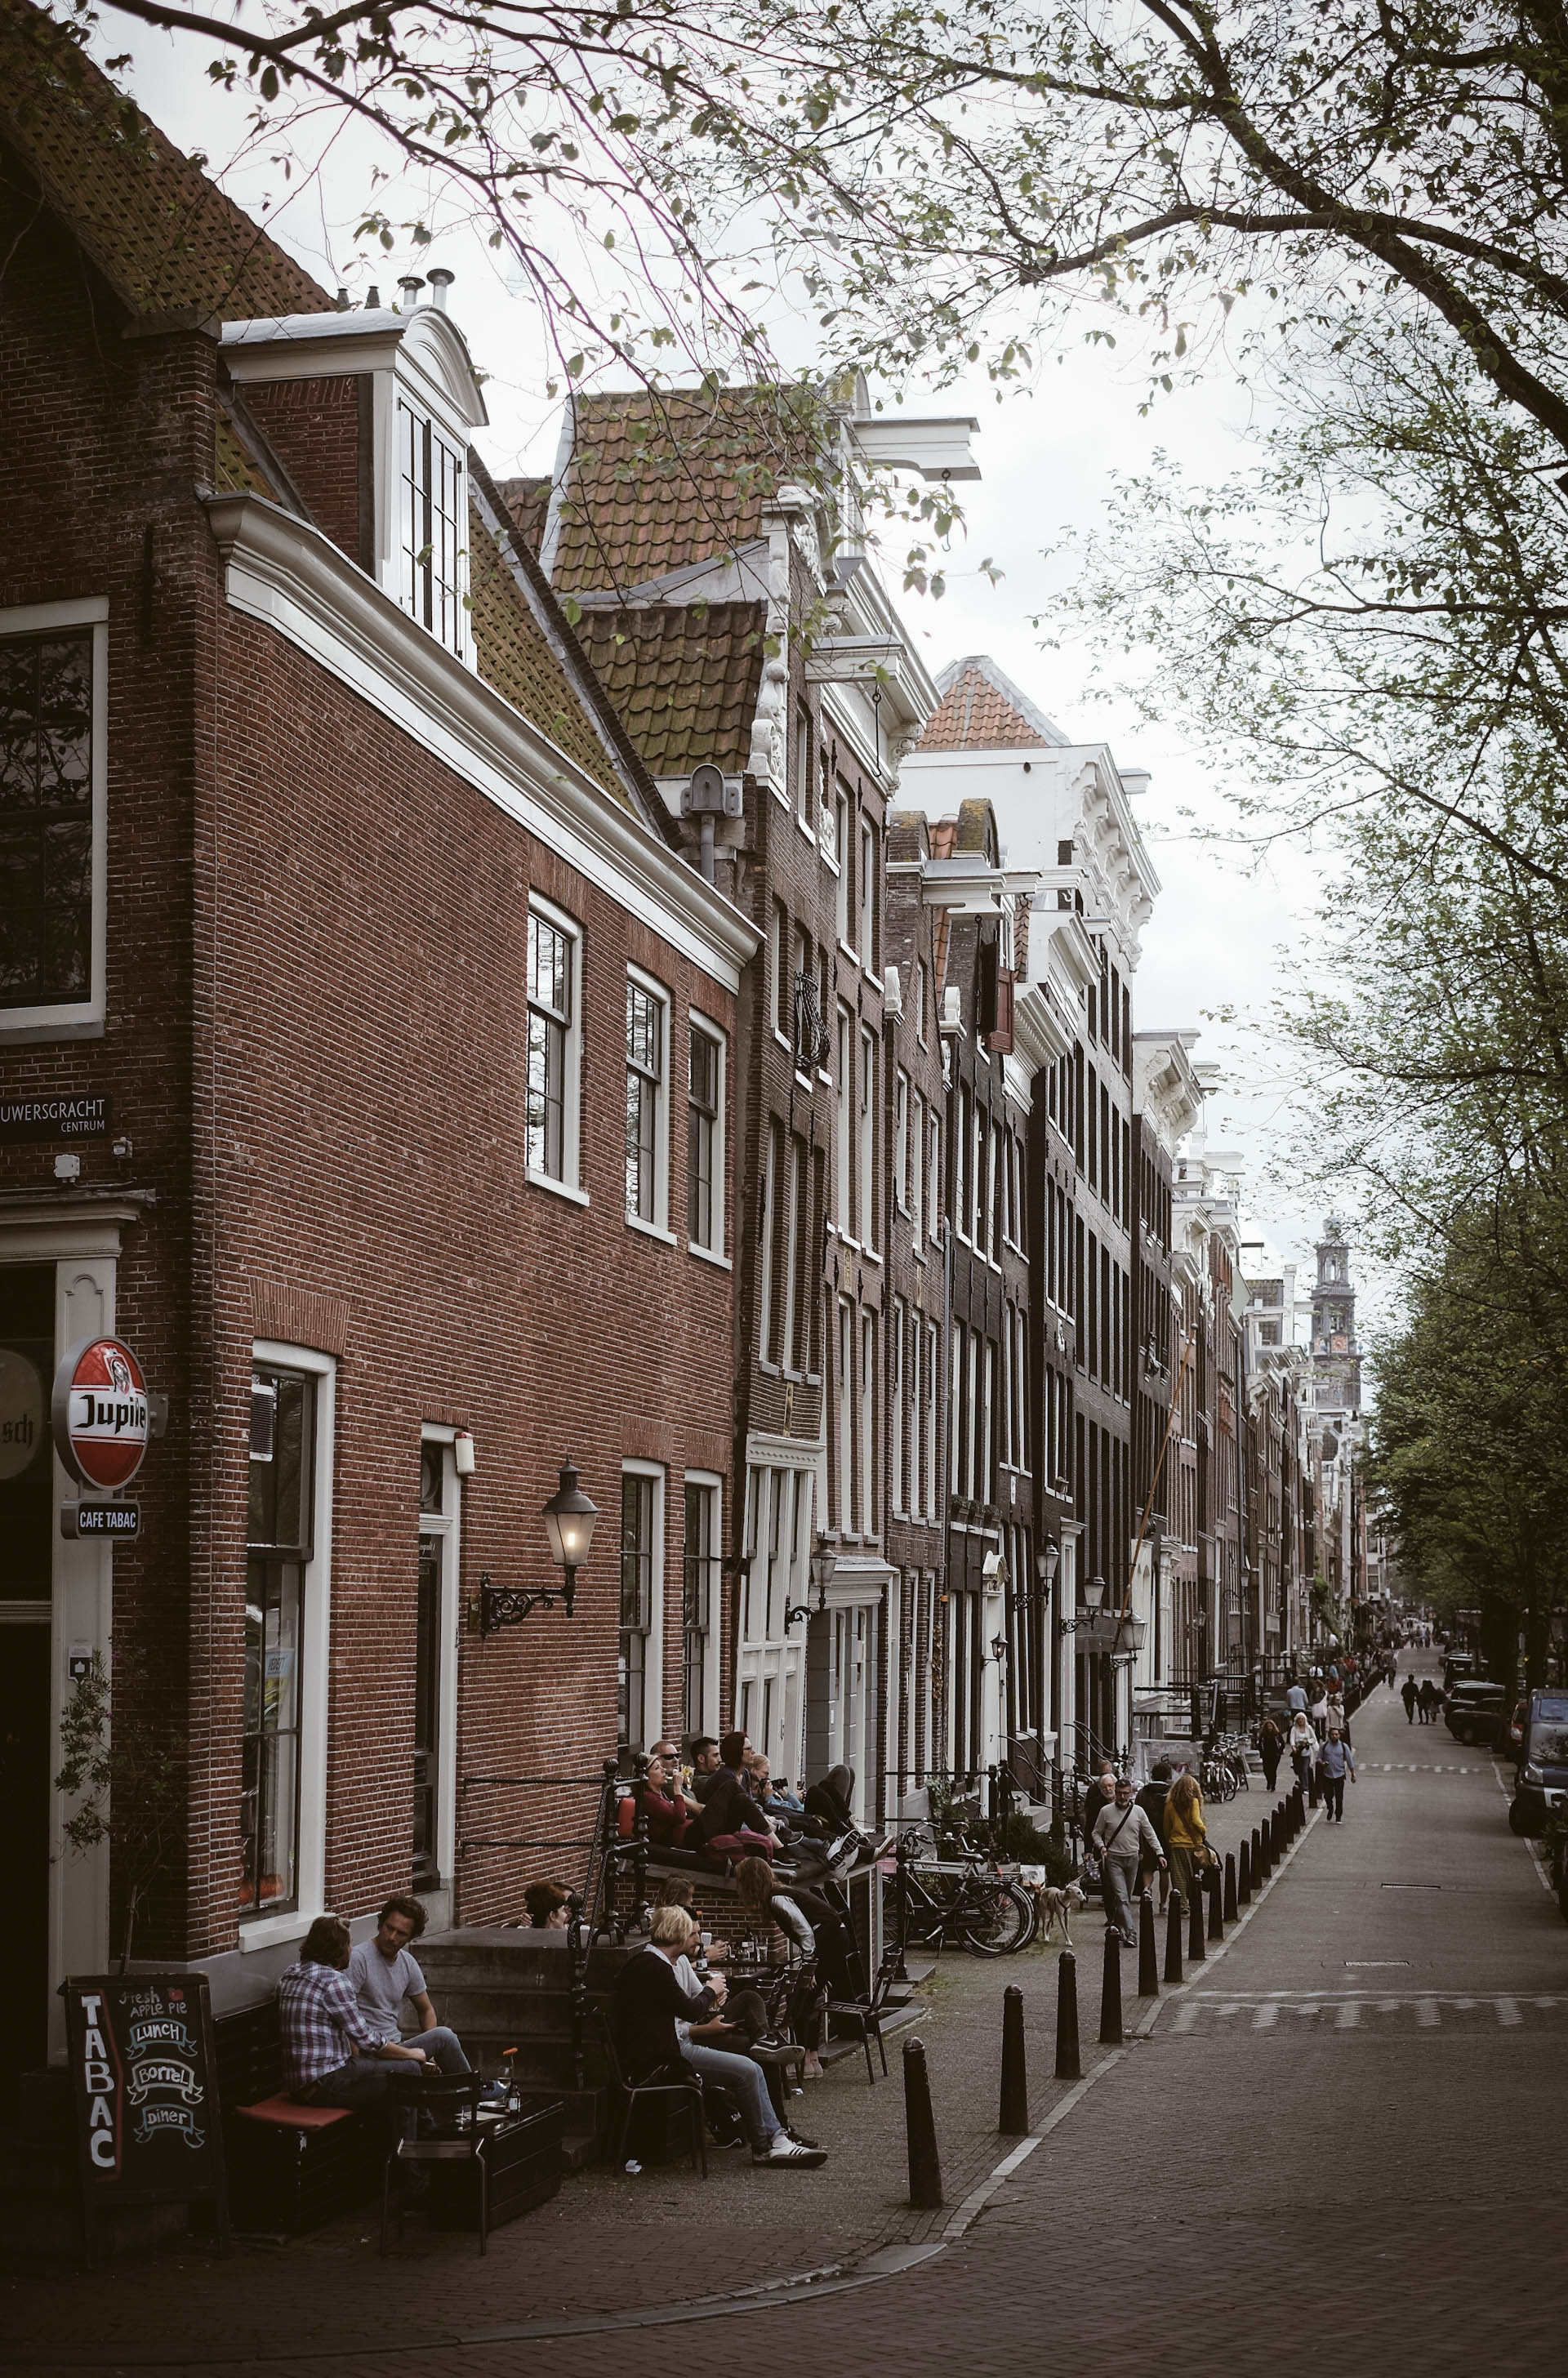 Amsterdam, Summer Days